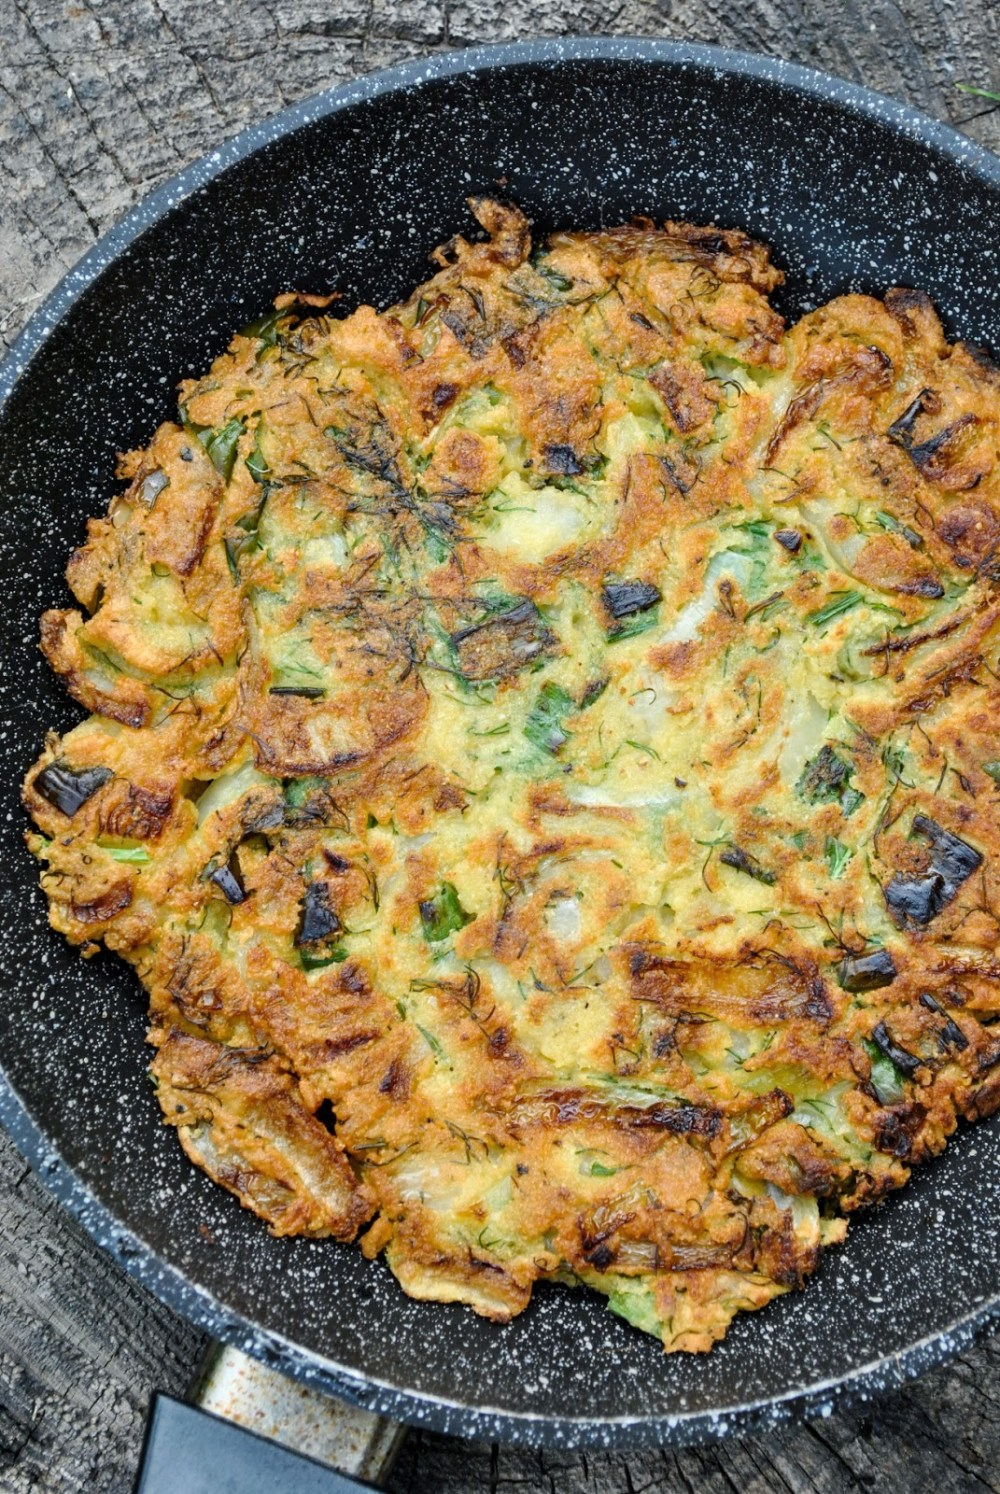 49 Savory Vegan Breakfast Recipes: Chickpea and Onion Omelette